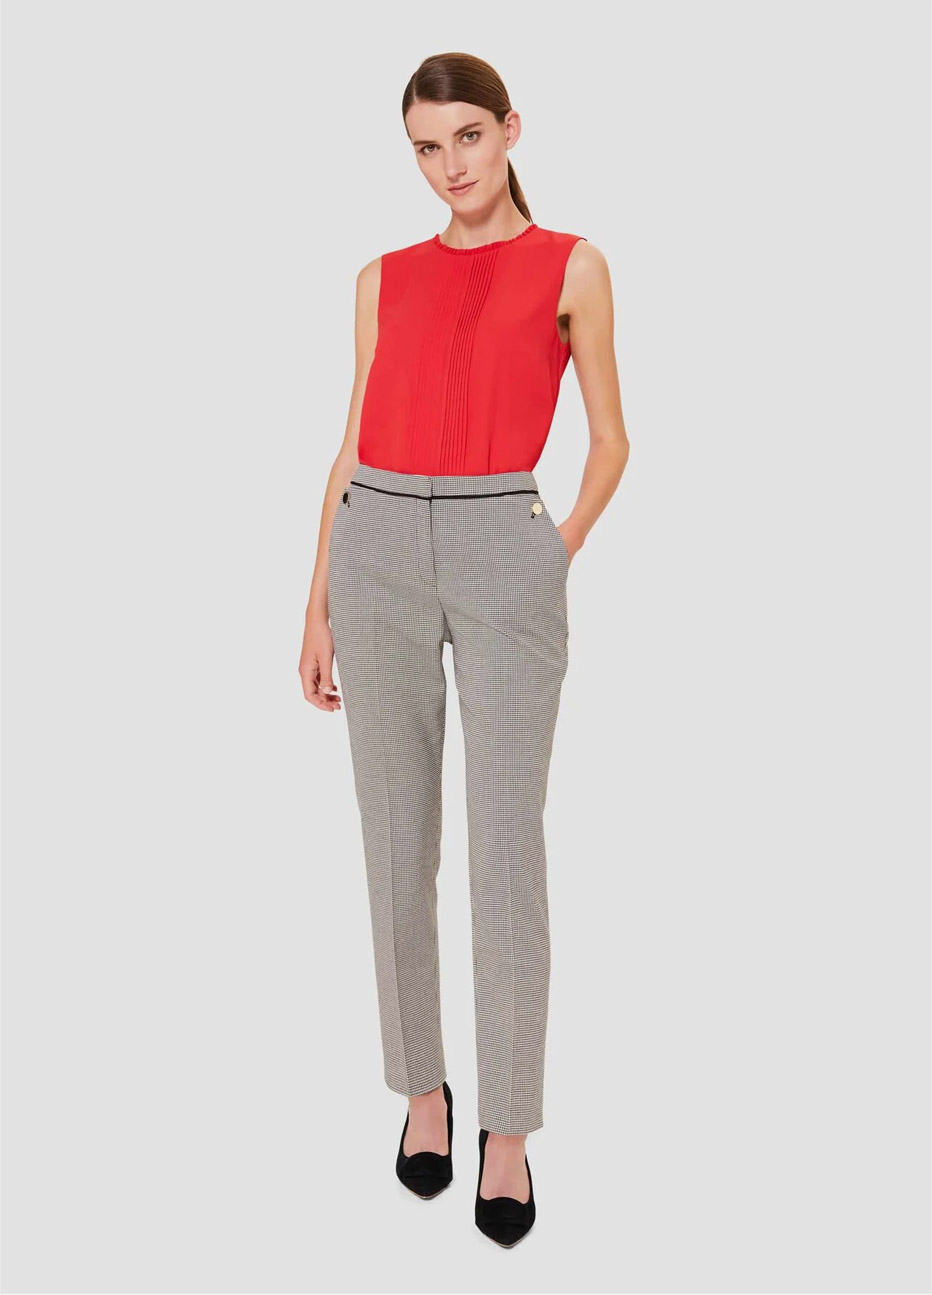 Red top with slim tailored trousers for women worn with black court shoes by Hobbs.